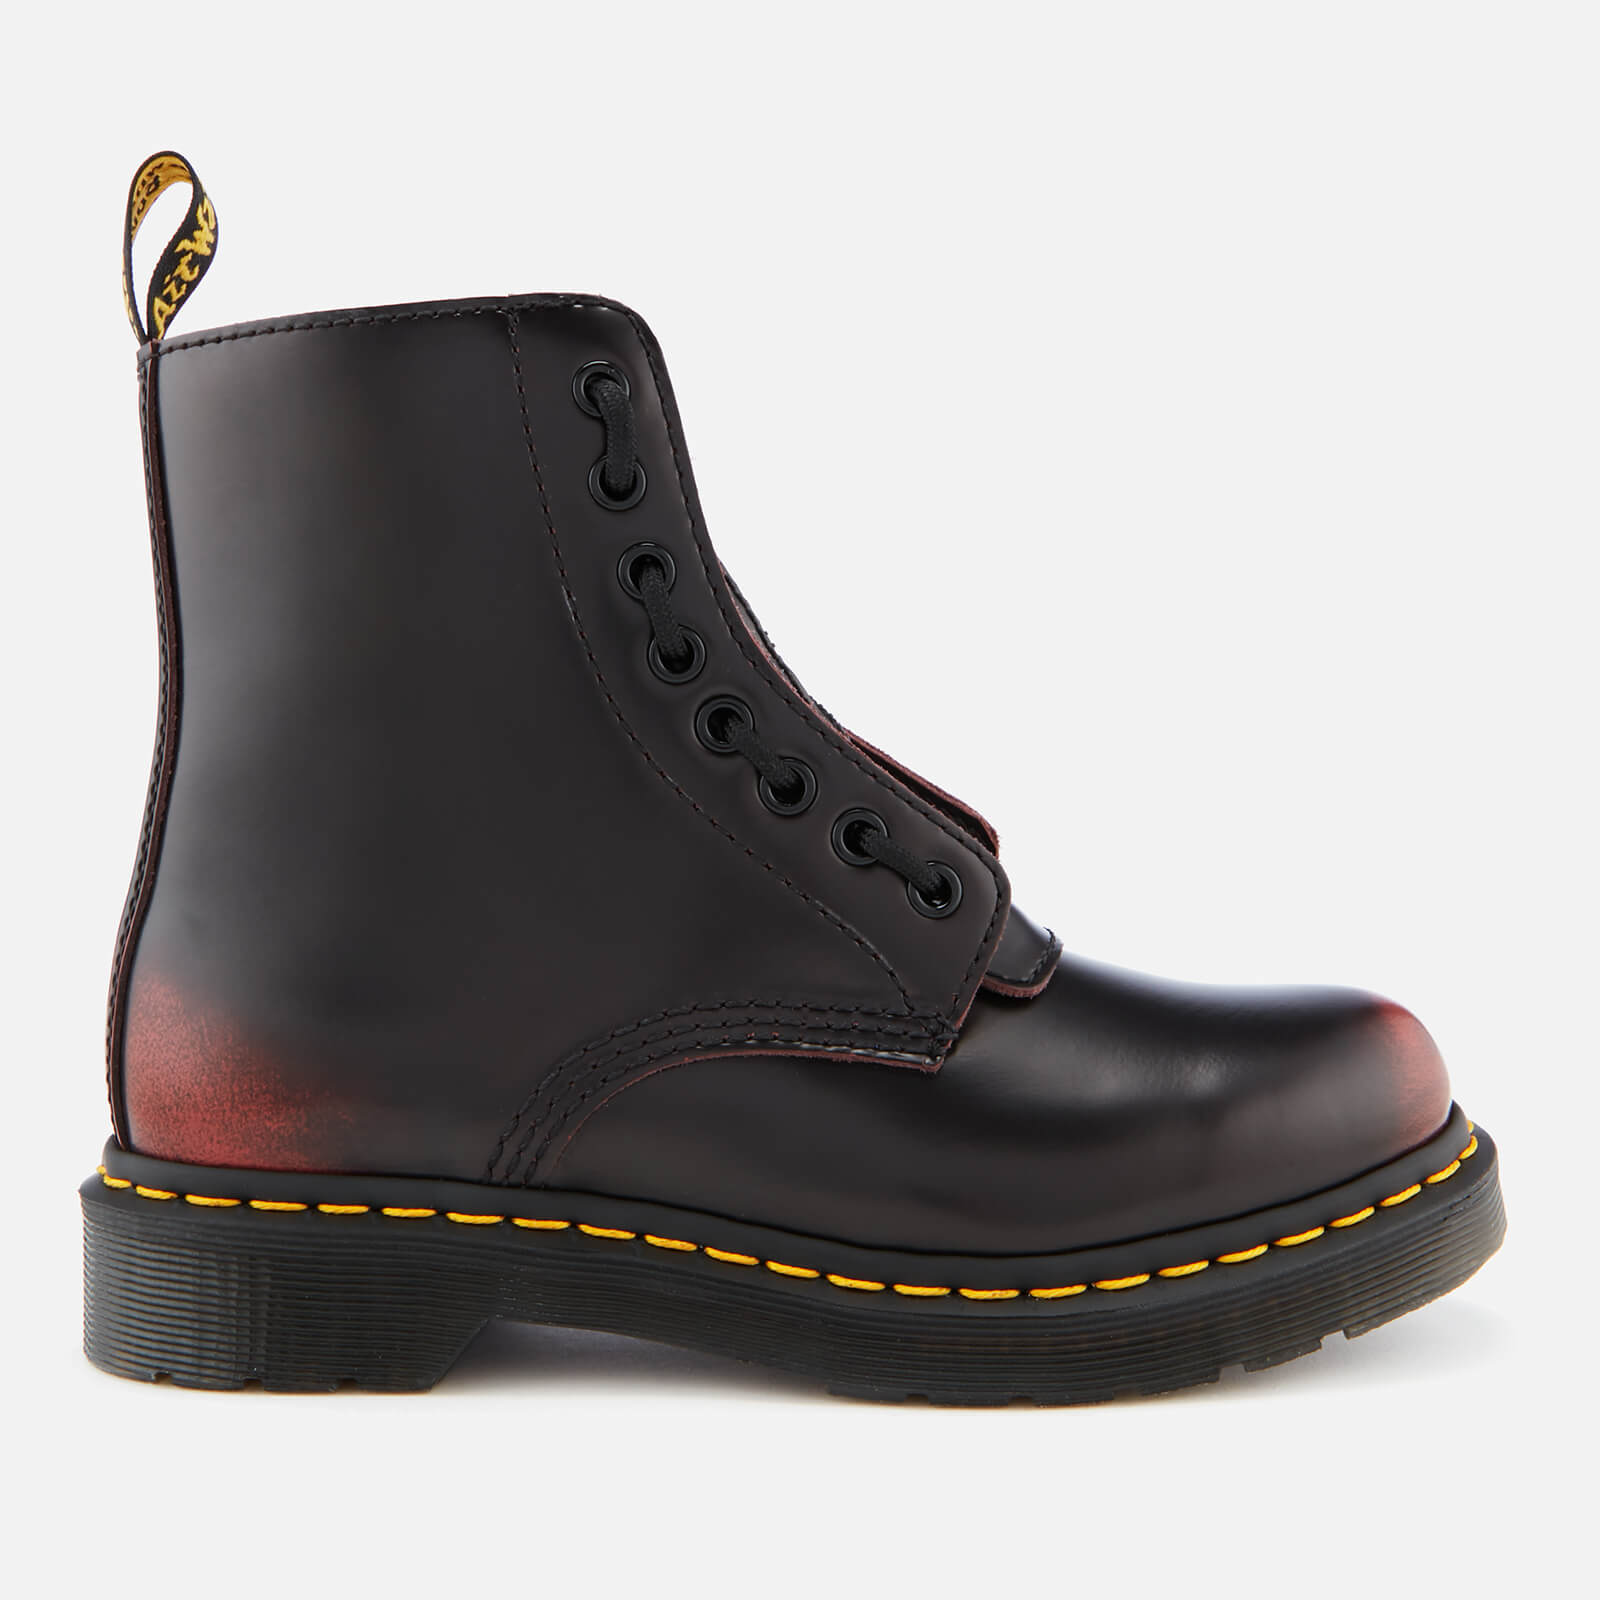 b4b4a6ffb4a10 Dr. Martens Women's 1460 Pascal Front Zip Arcadia Leather 8-Eye Boots - Cherry  Red | FREE UK Delivery | Allsole